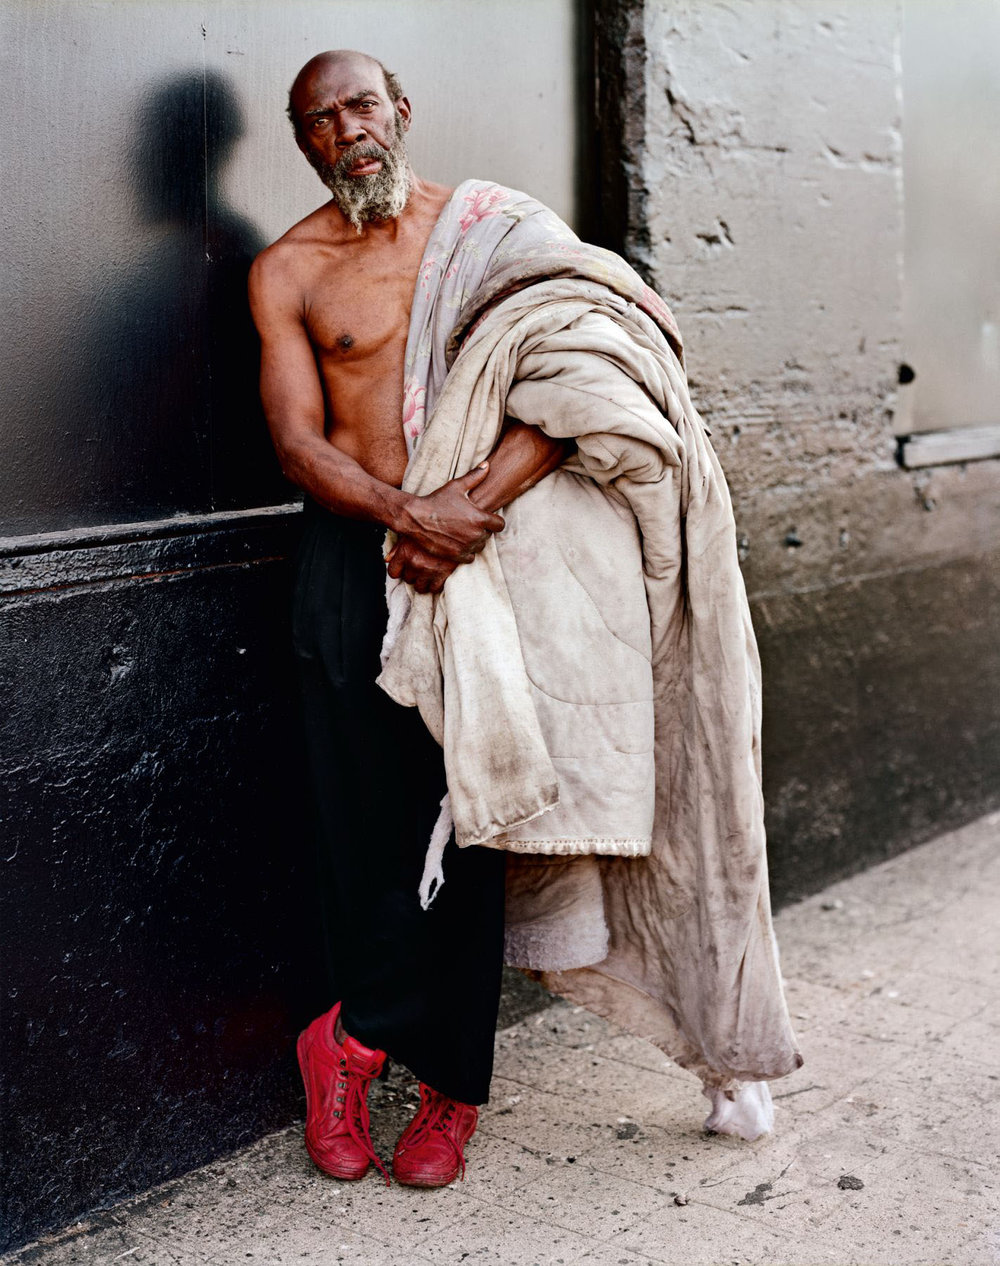 A Homeless Man With His Bedding, New York, New York, July 1993